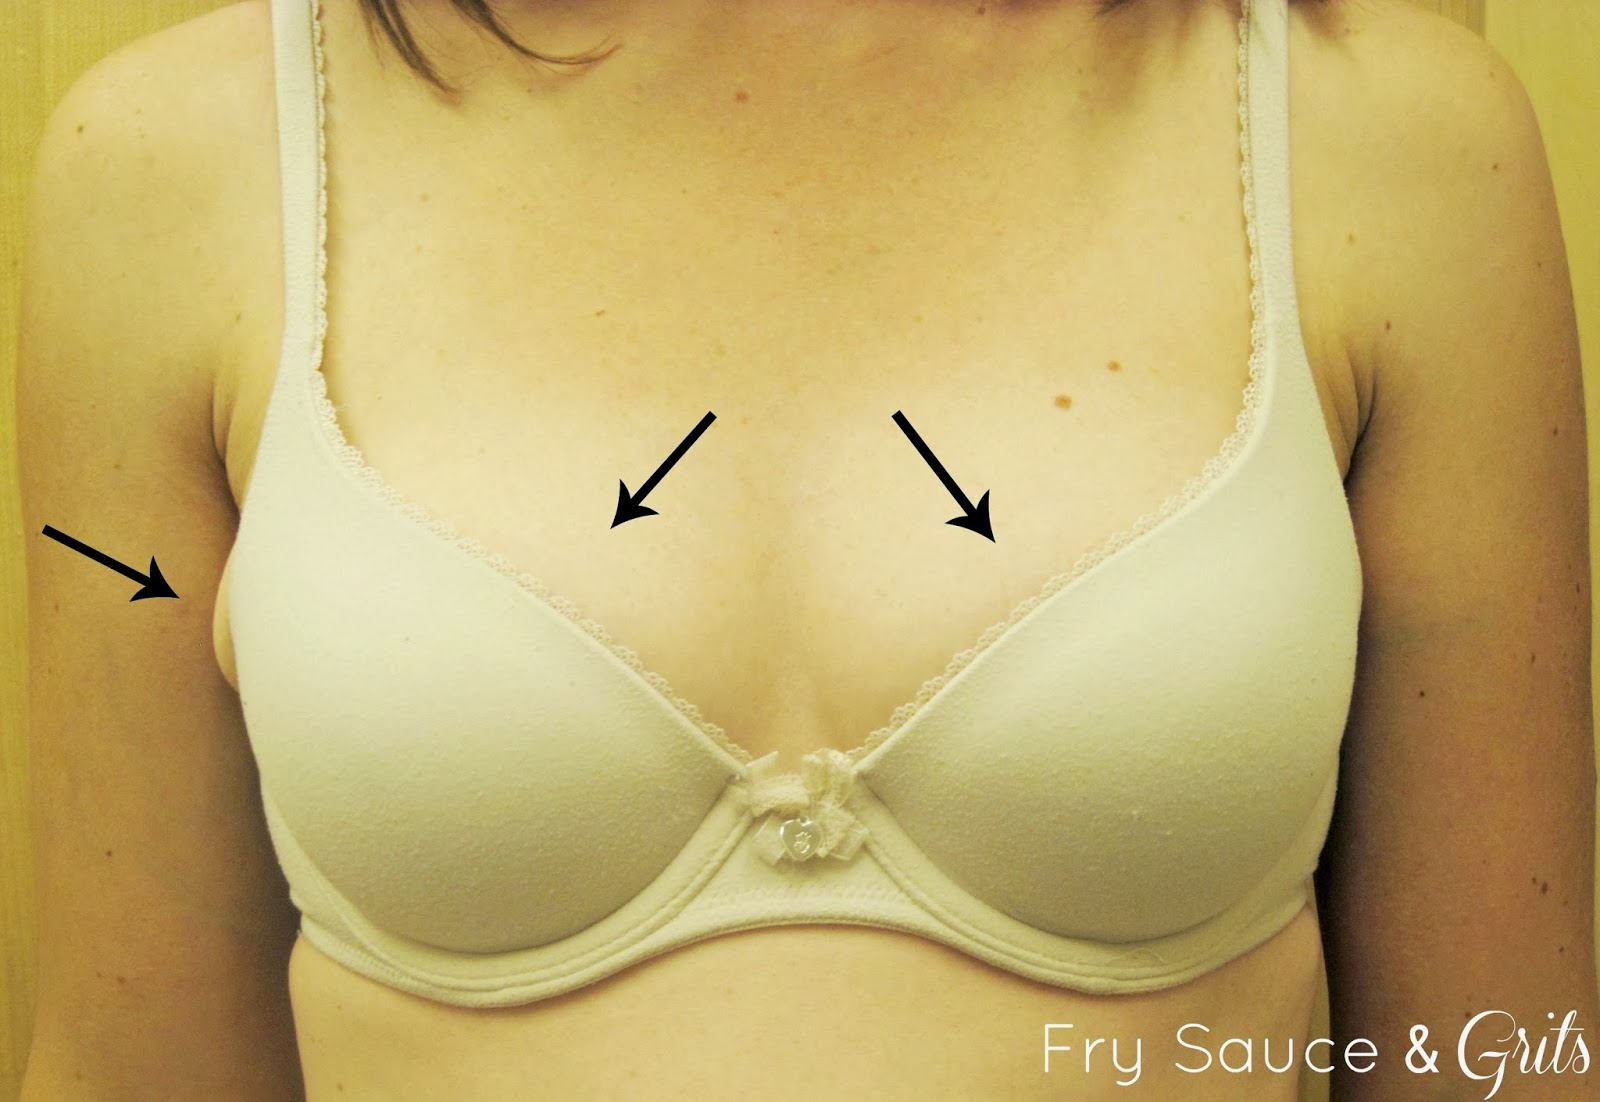 Fry Sauce & Grits: Bra Guide: How to identify your breast ...